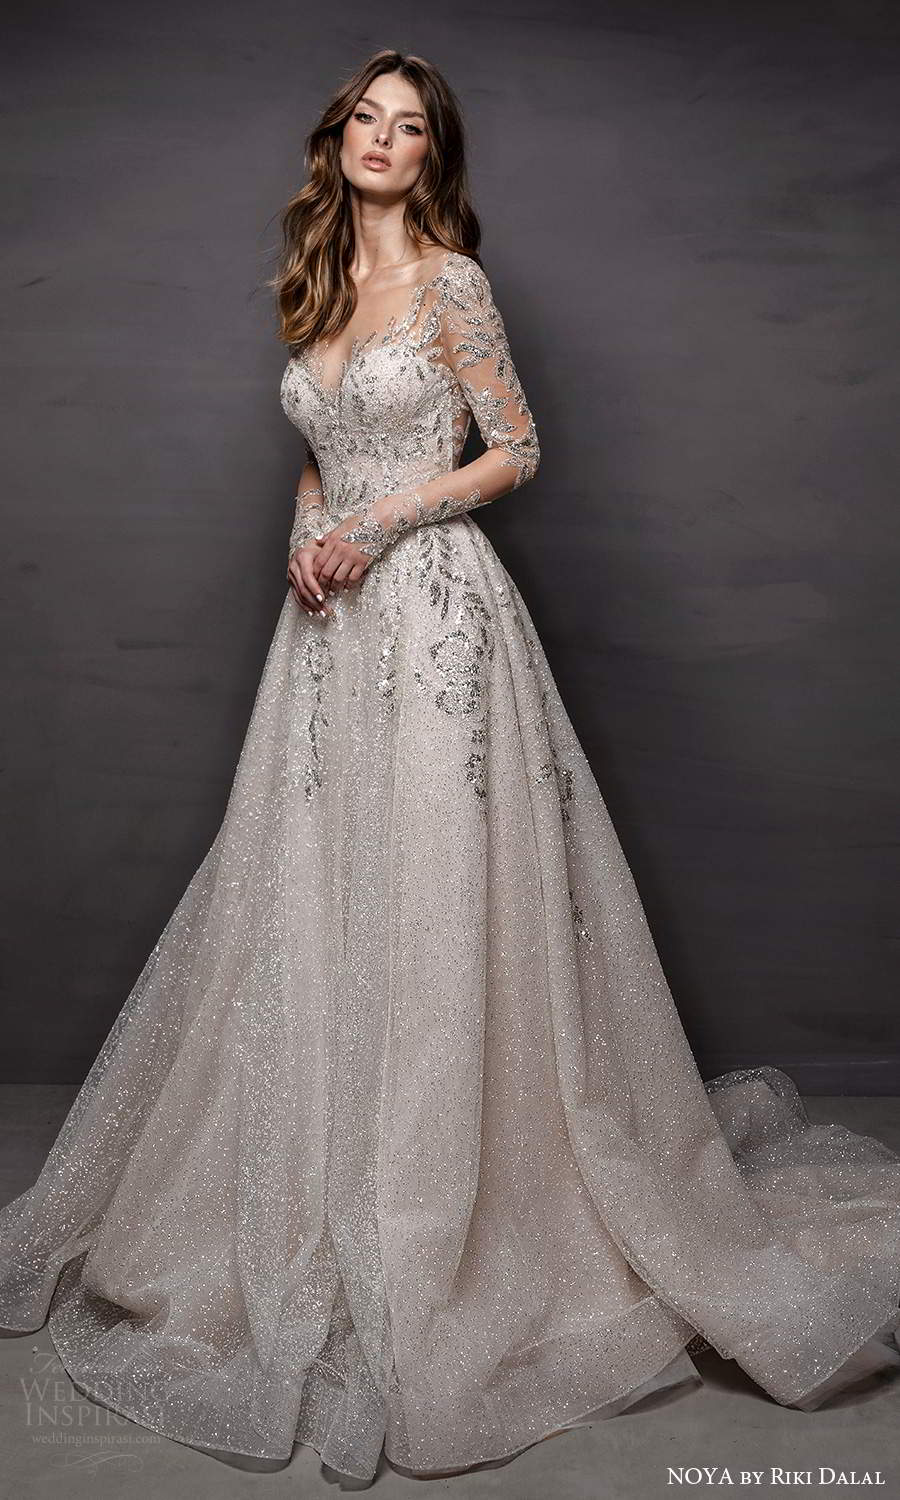 noya riki dalal 2021 bridal sheer long sleeves sweetheart neckline fully embellished a line ball gown wedding dress chapel train (1) mv